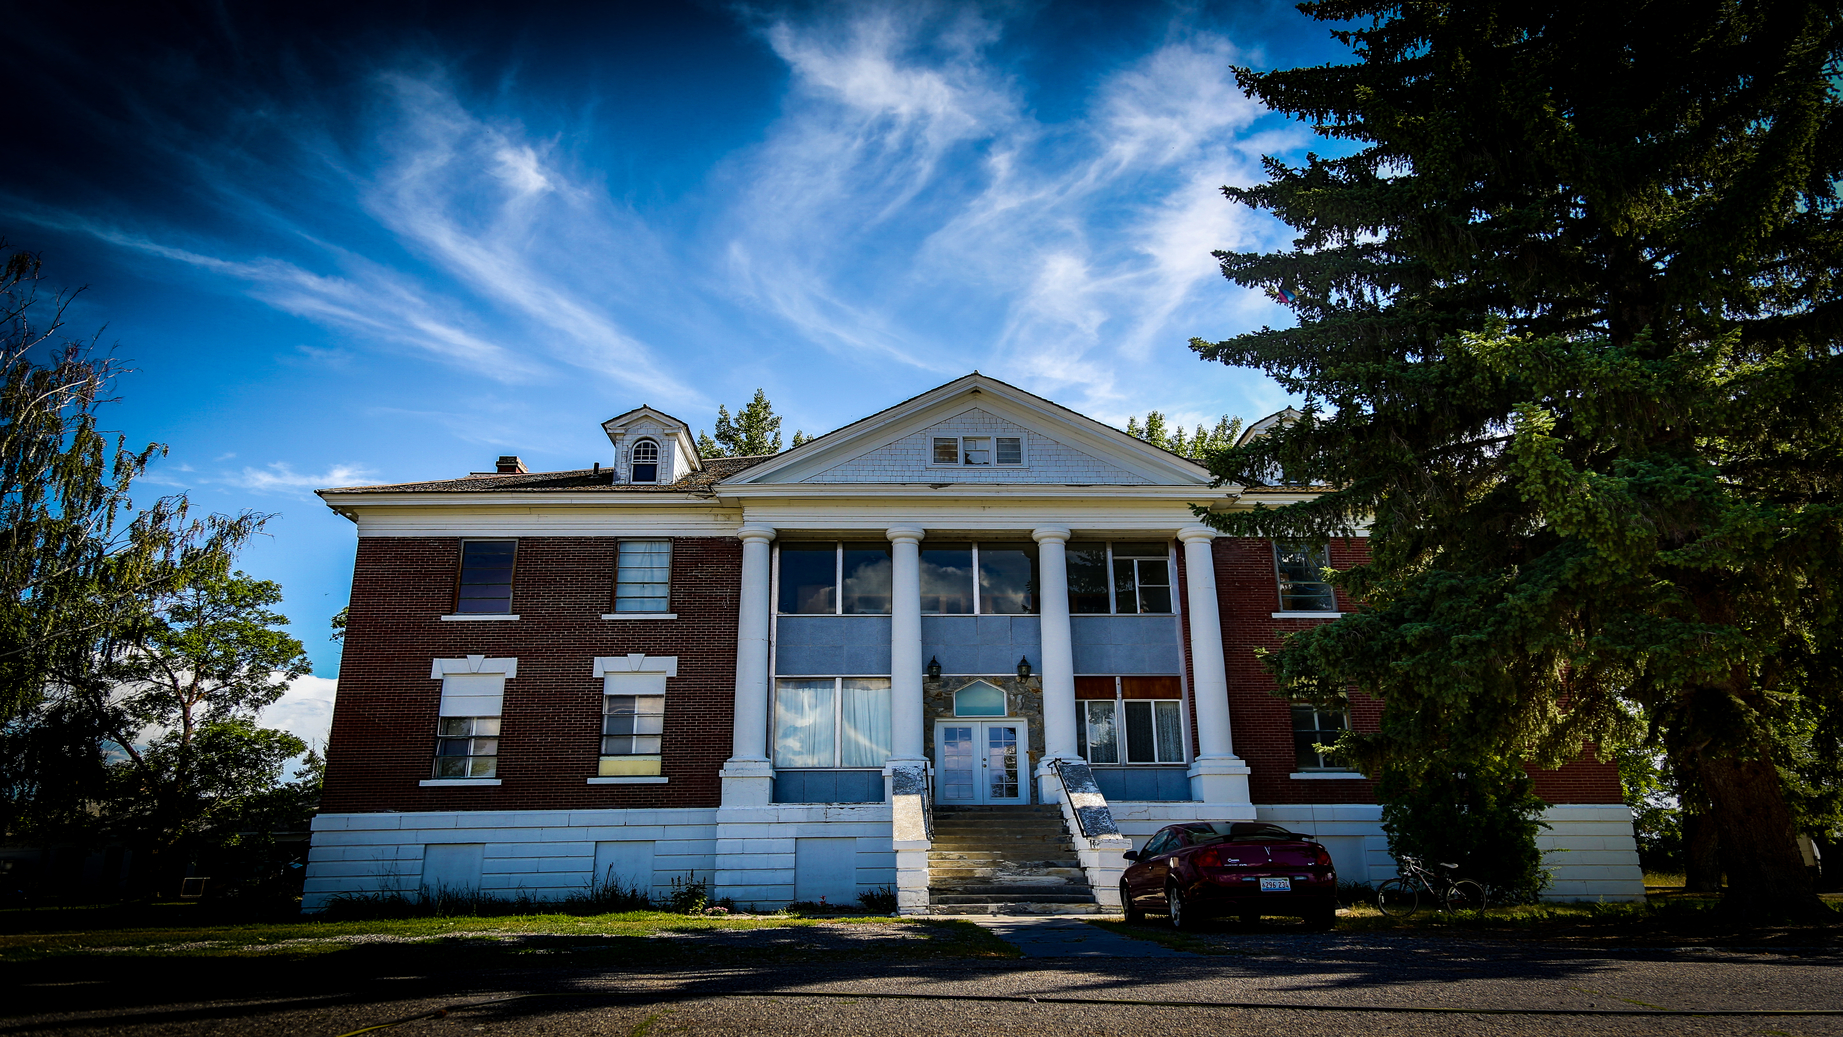 Idaho State Reform School & Infirmary | St Anthony, Idaho